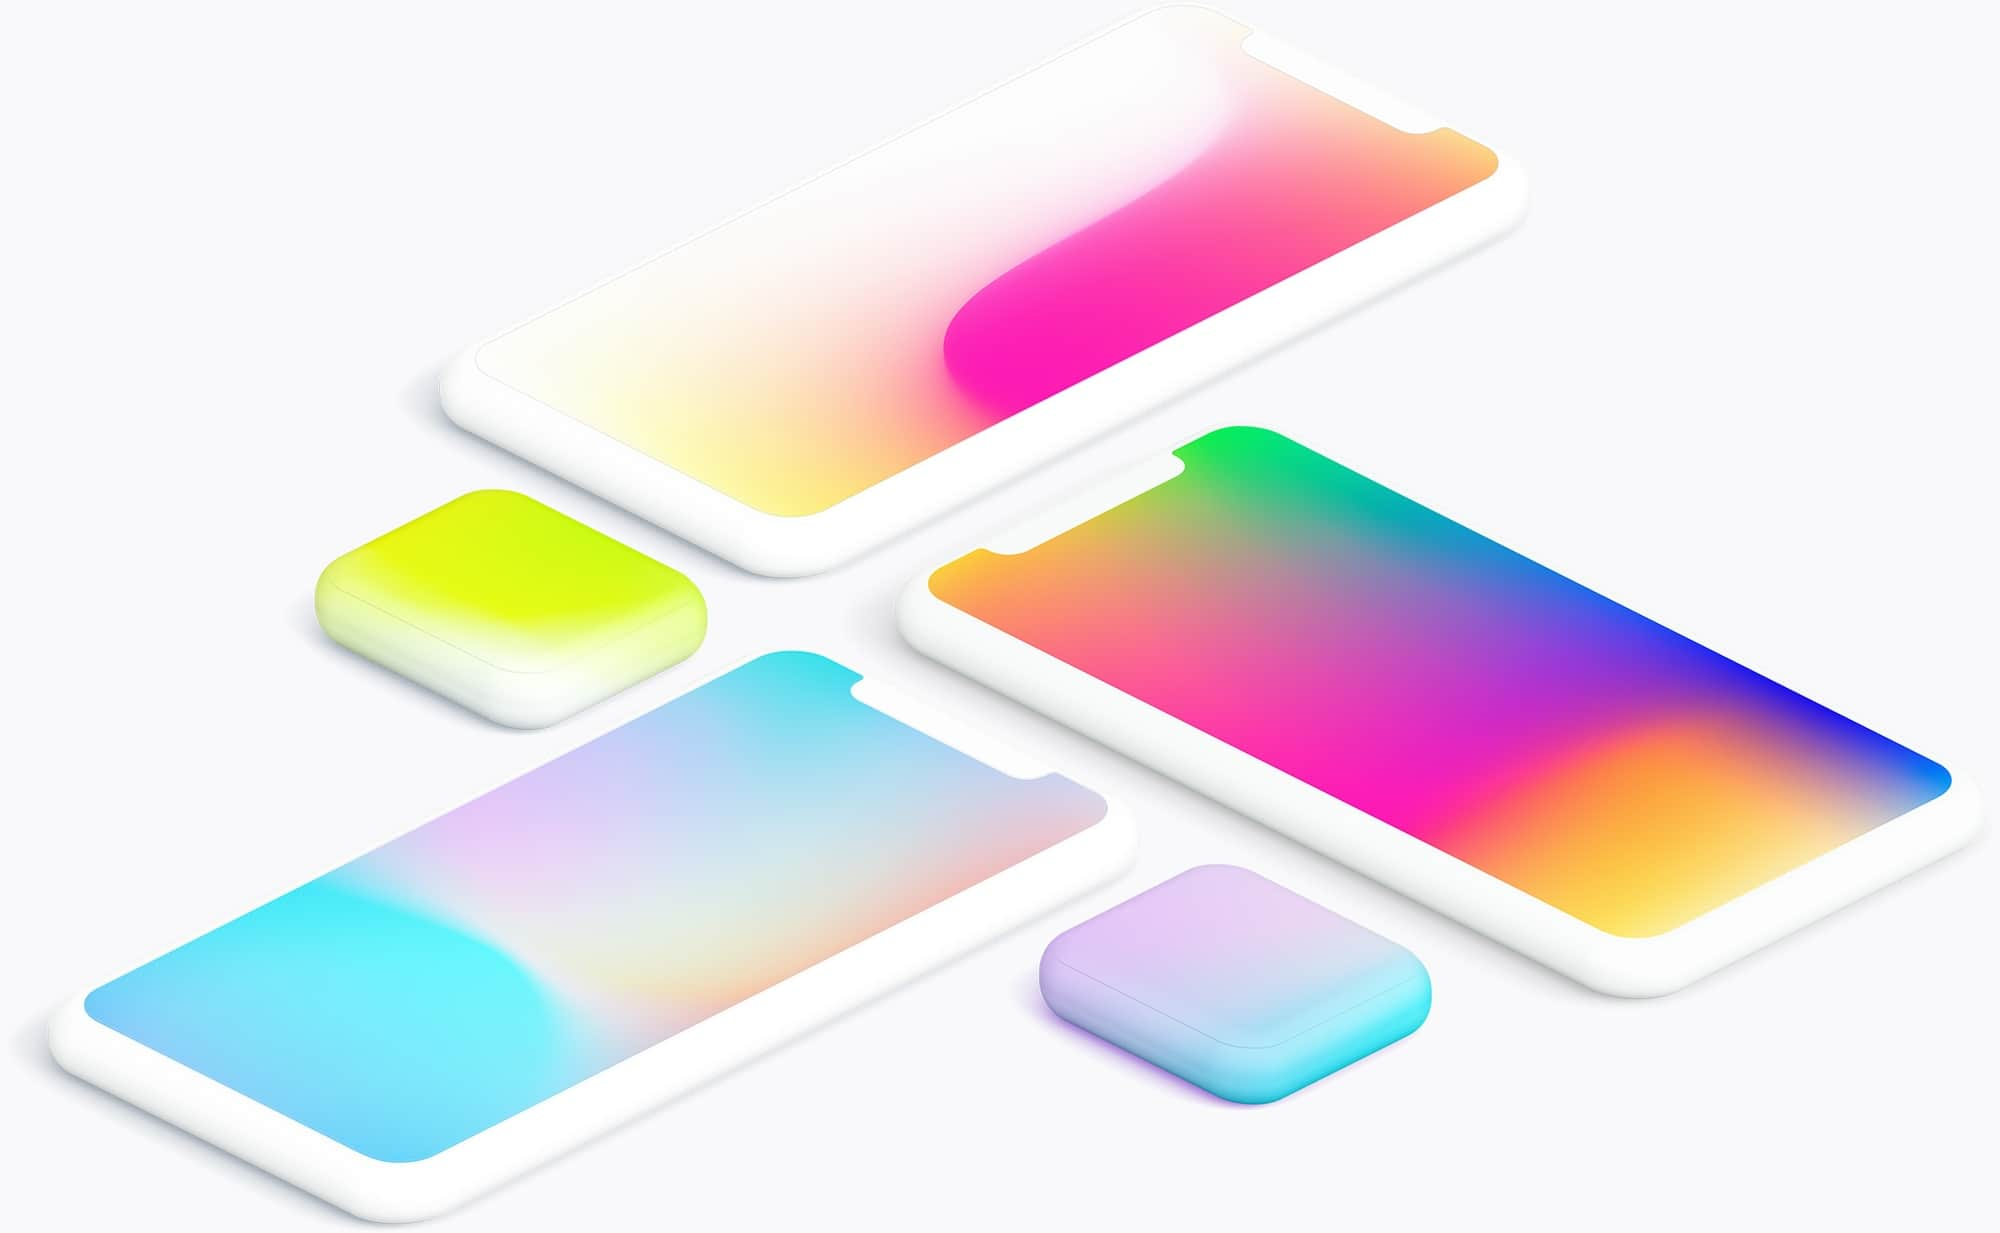 Mesh Gradients Collection - 100 mesh gradients in .sketch, .png, .ai, .jpg, .eps. Download and use in your commercial and personal projects.